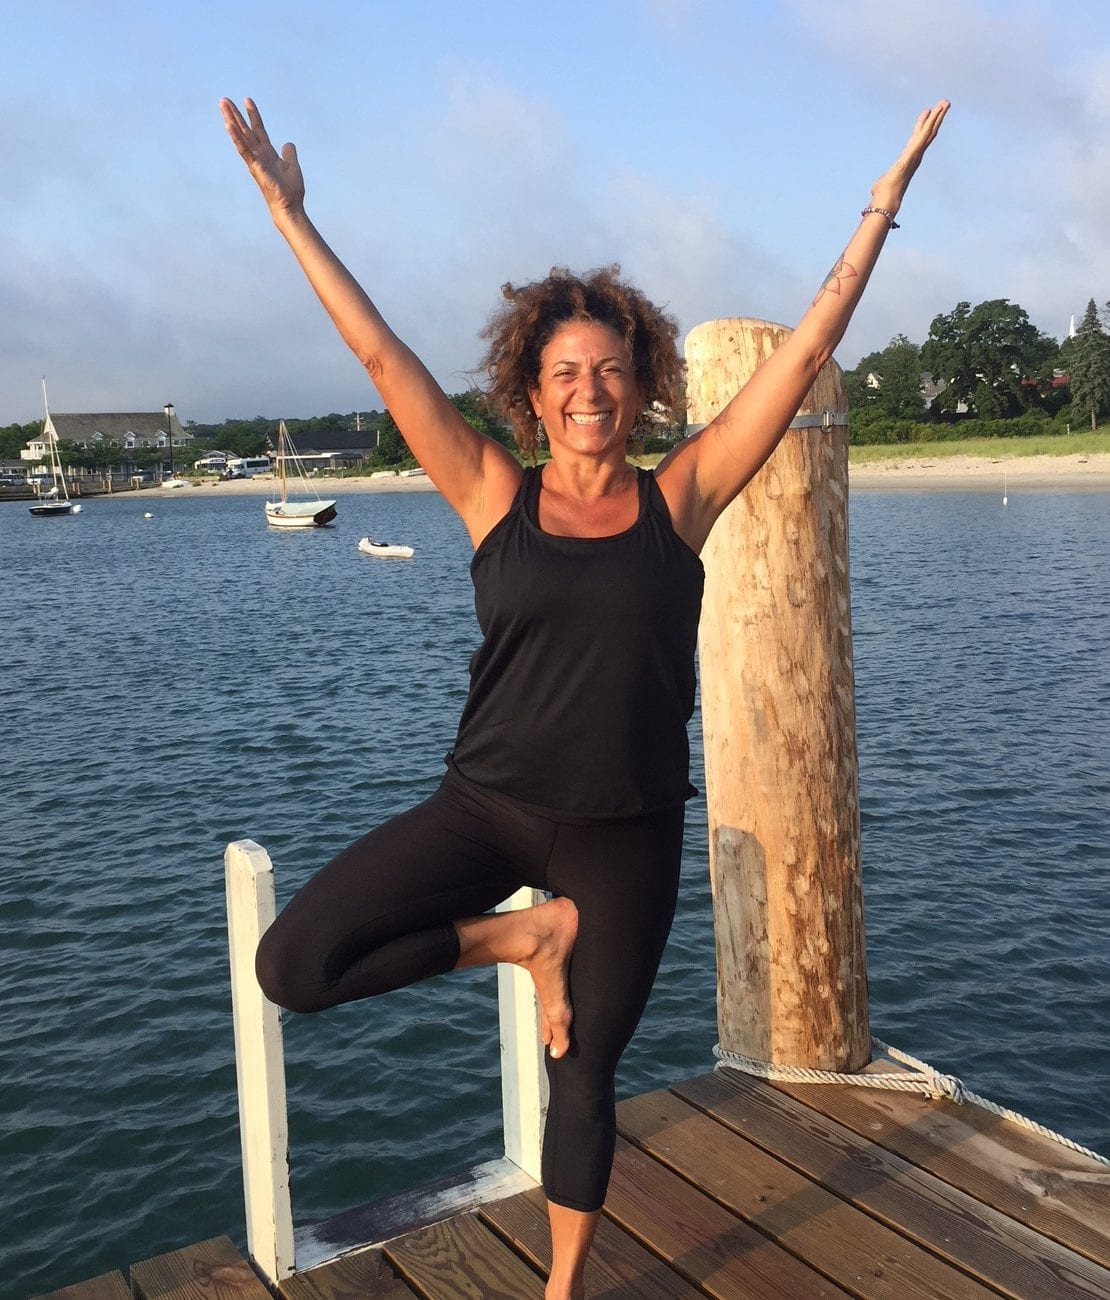 Martha's Vineyard Yoga: Yoga On The Dock Sherry Sidoti Vineyard haven Harbor